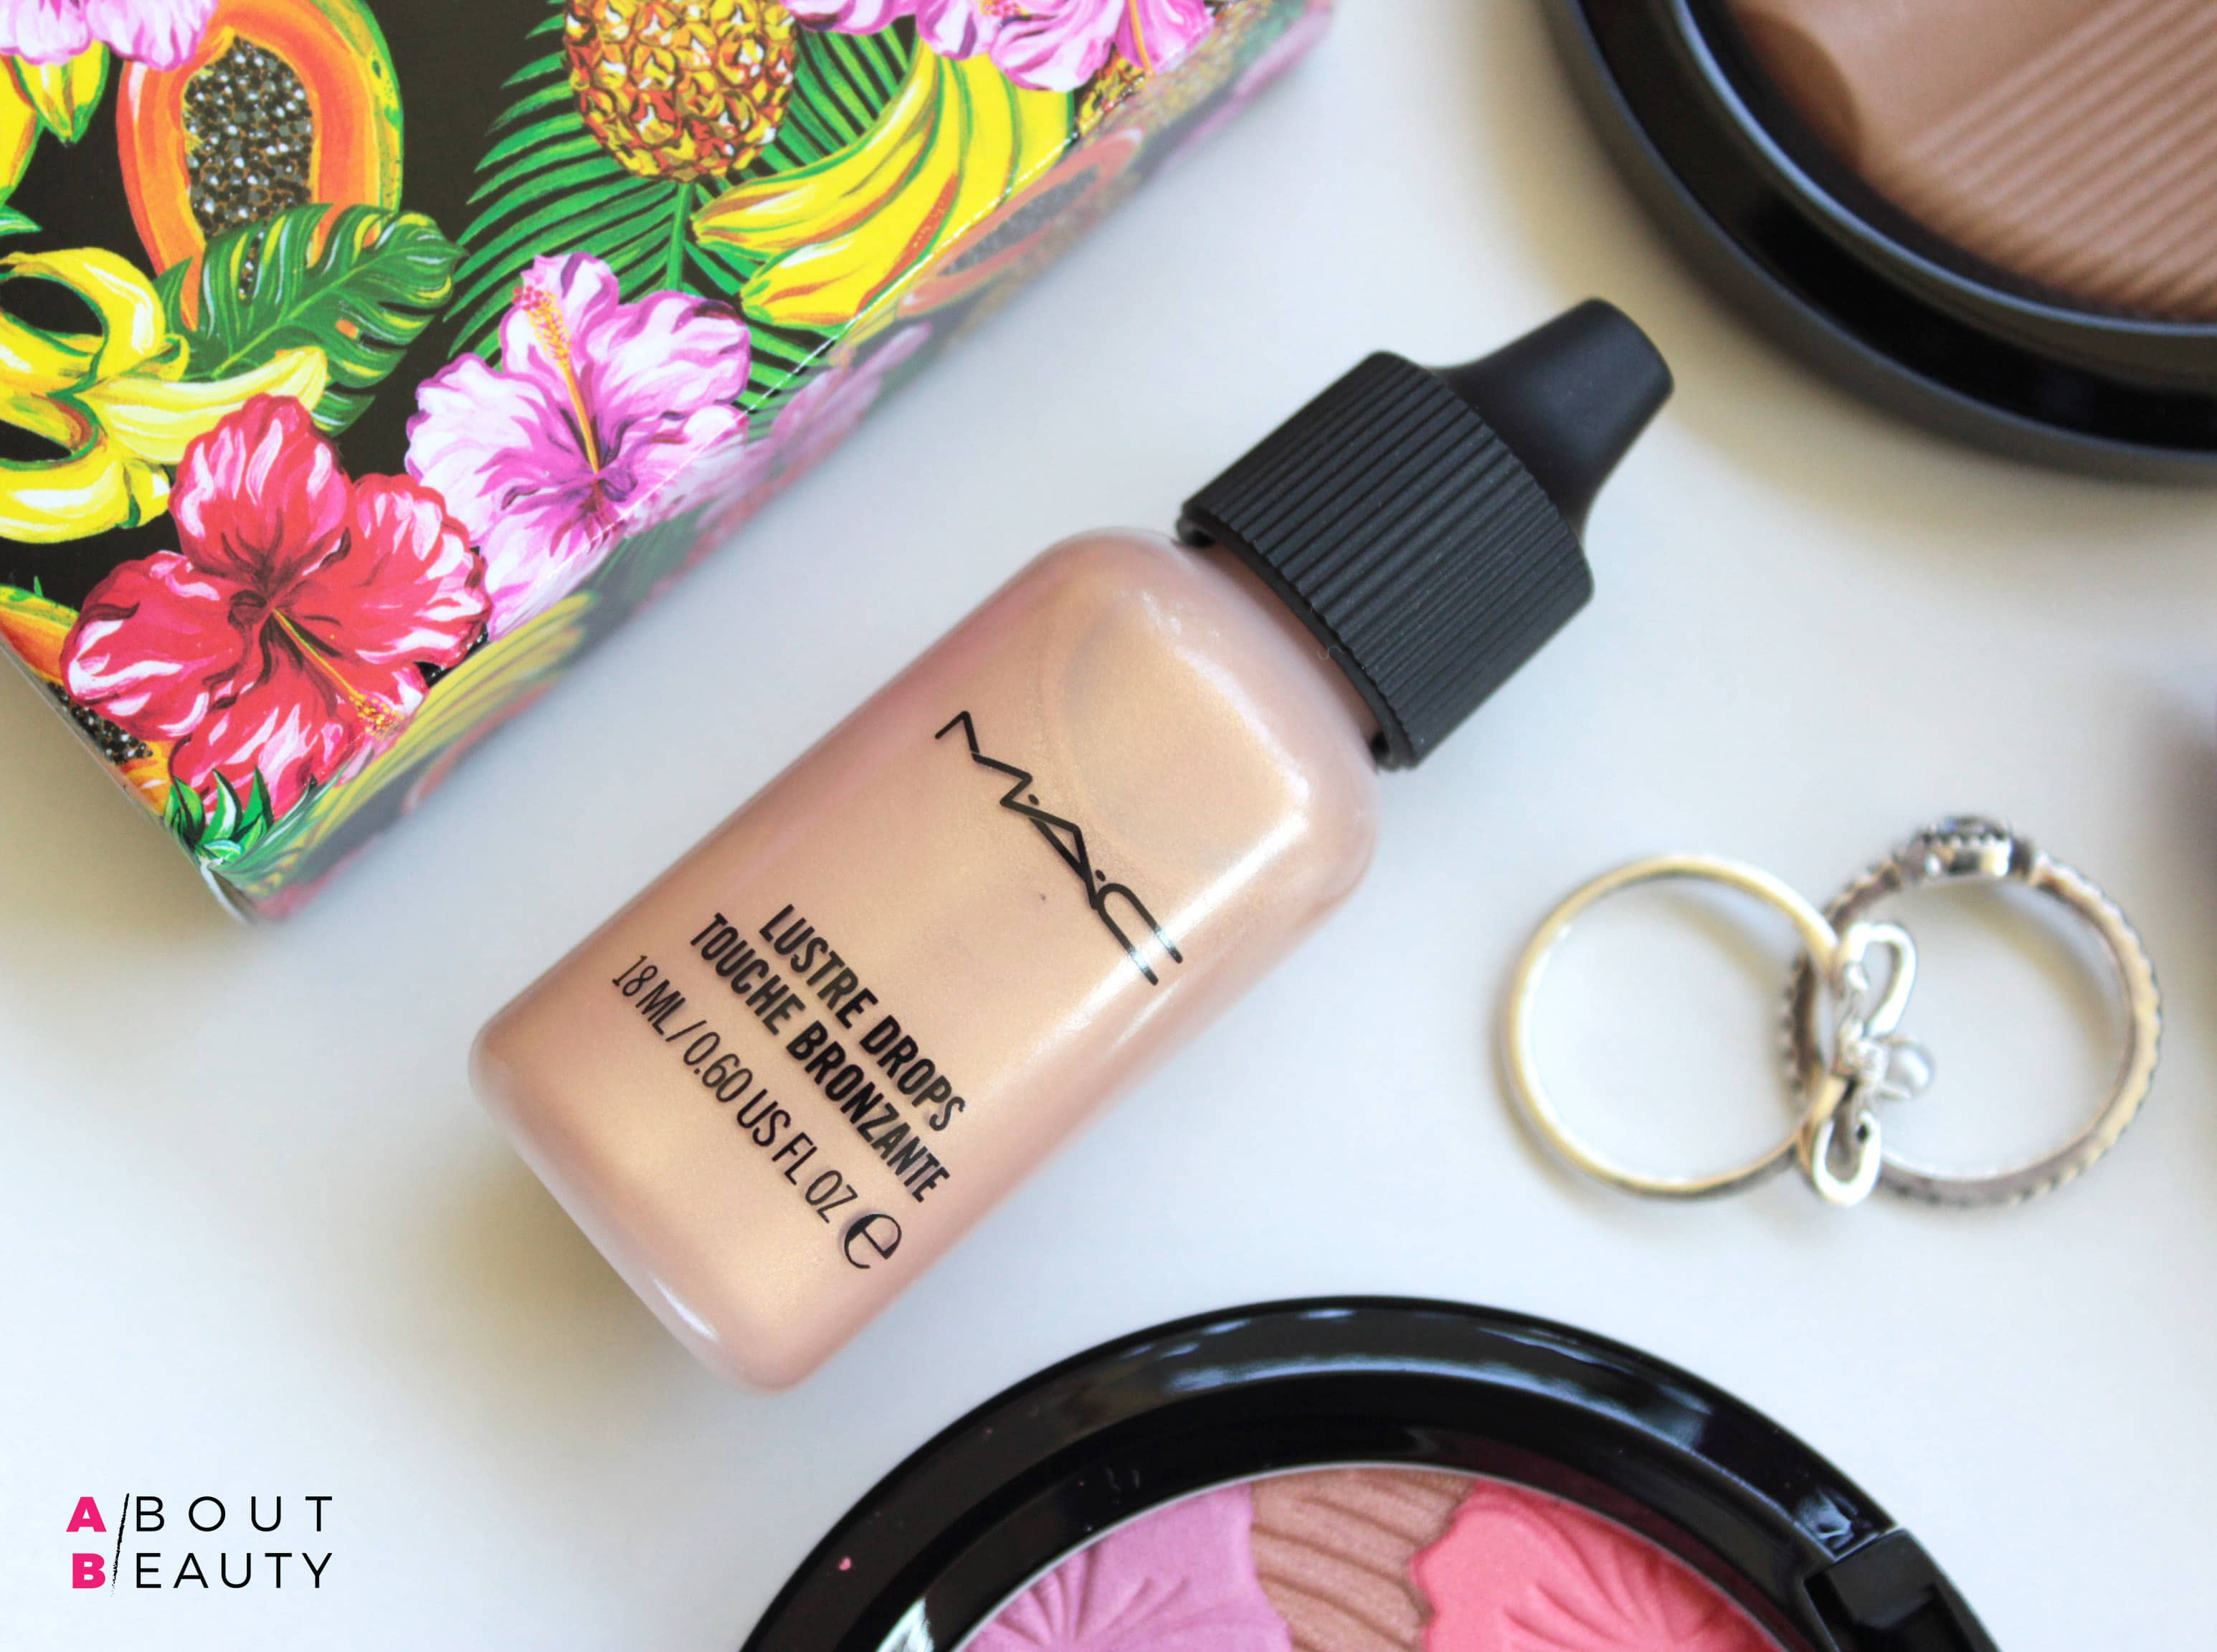 MAC Fruity Juicy Lustre Drops Touche Bronzante - Review, Swatch, opinioni e comparazioni dell'illuminante liquido Sun Rush in limited edition